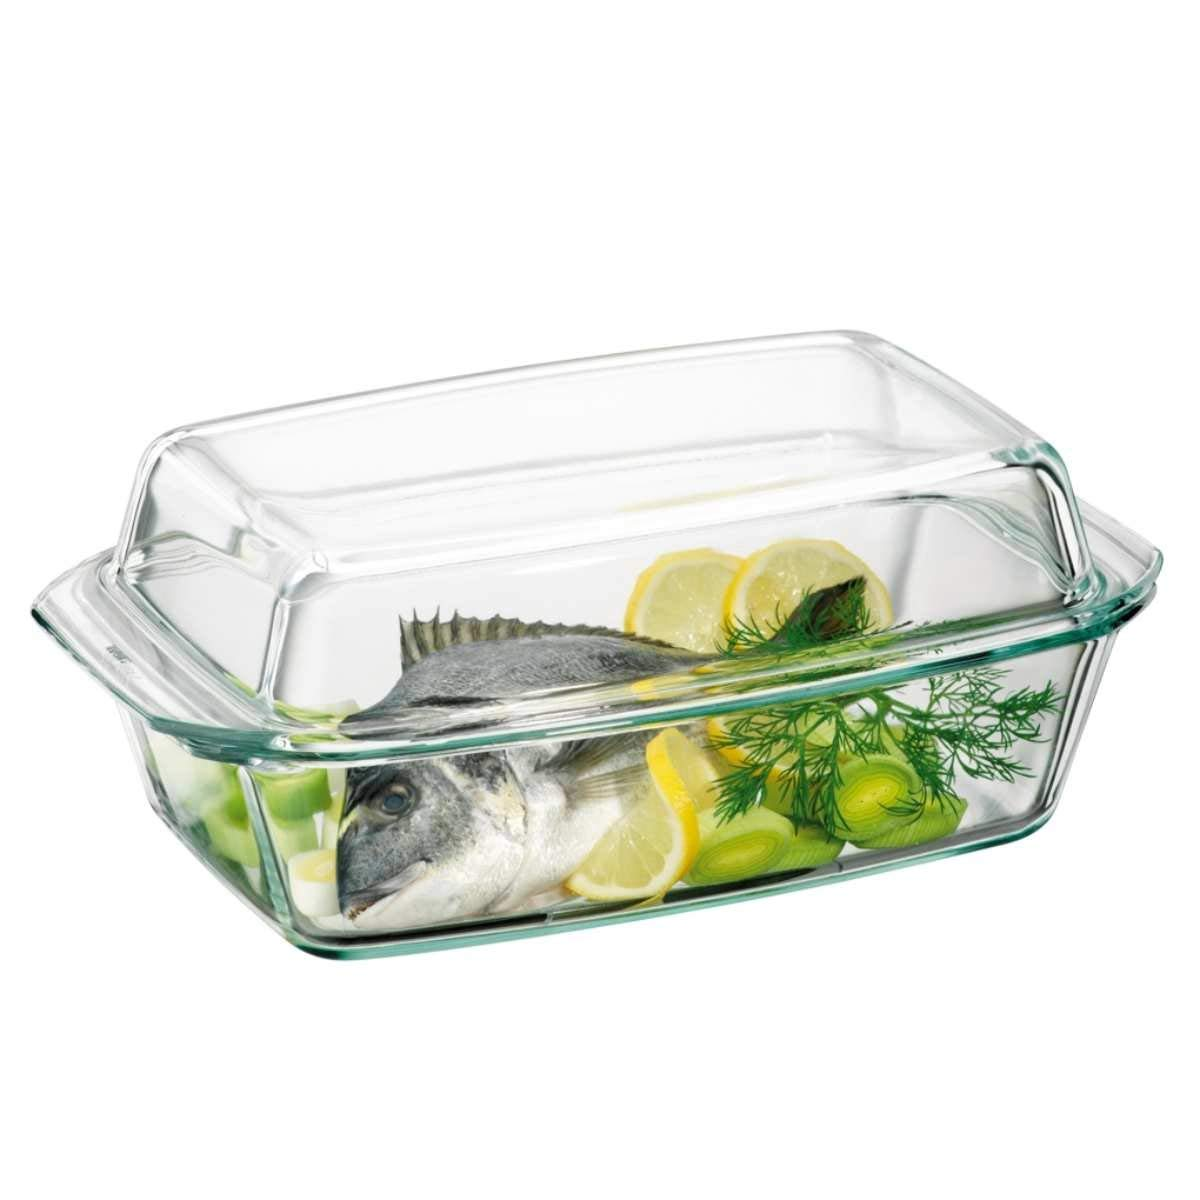 Clear Oblong Glass Casserole by Simax | High Lid Doubles as Roaster, Heat, Cold and Shock Proof, Dishwasher Safe, Made in Europe, 3 Quart by Simax